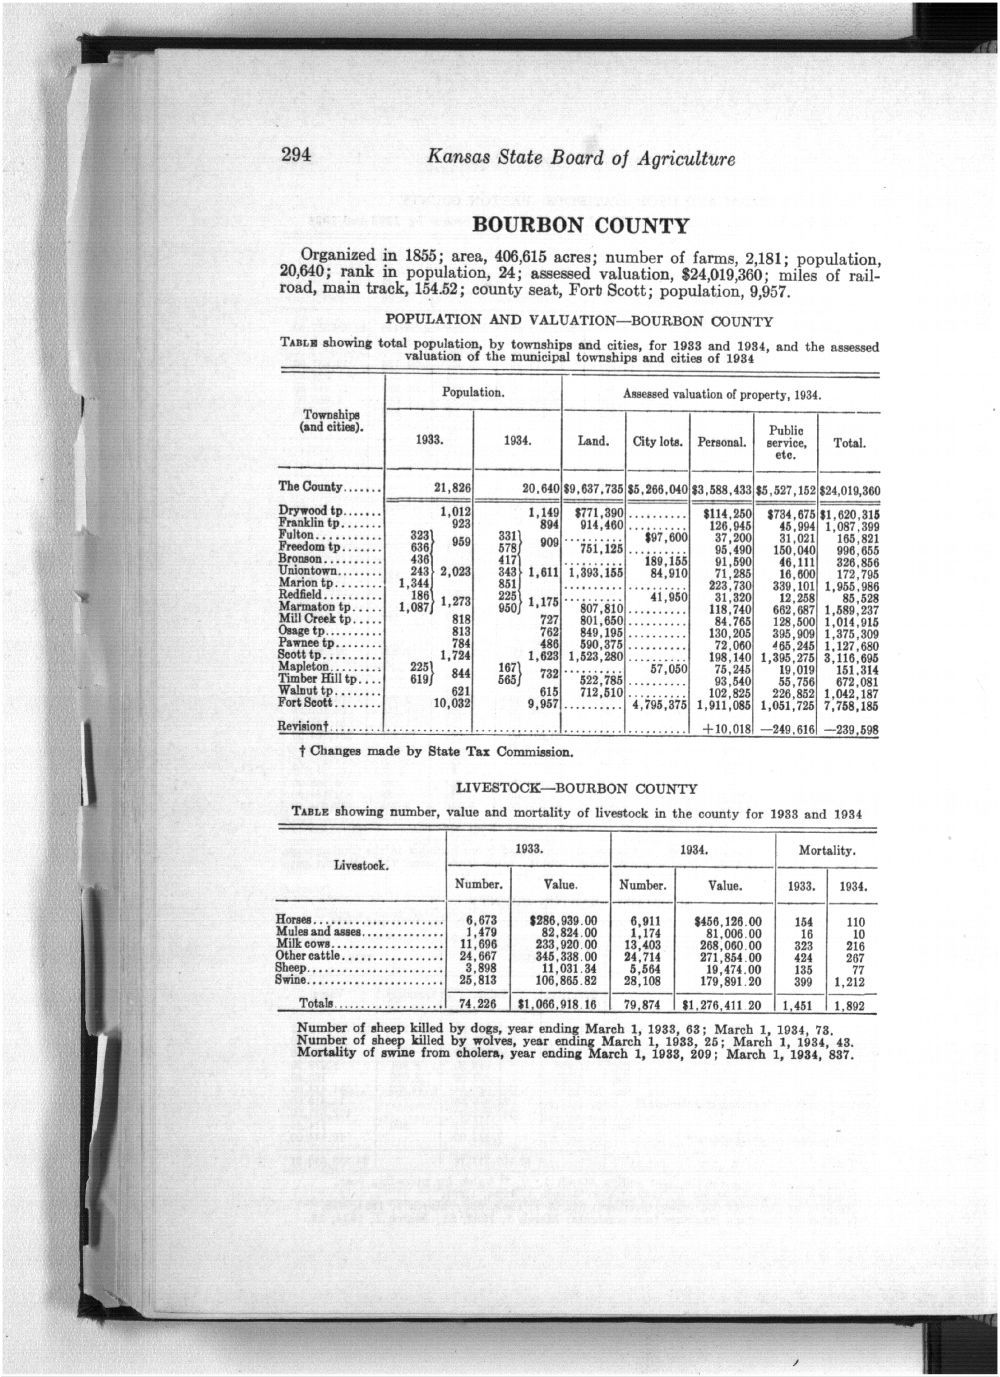 Twenty-ninth Biennial Report, Statistics by county showing population, acreage, production, and livestock, 1933-1934 - 294